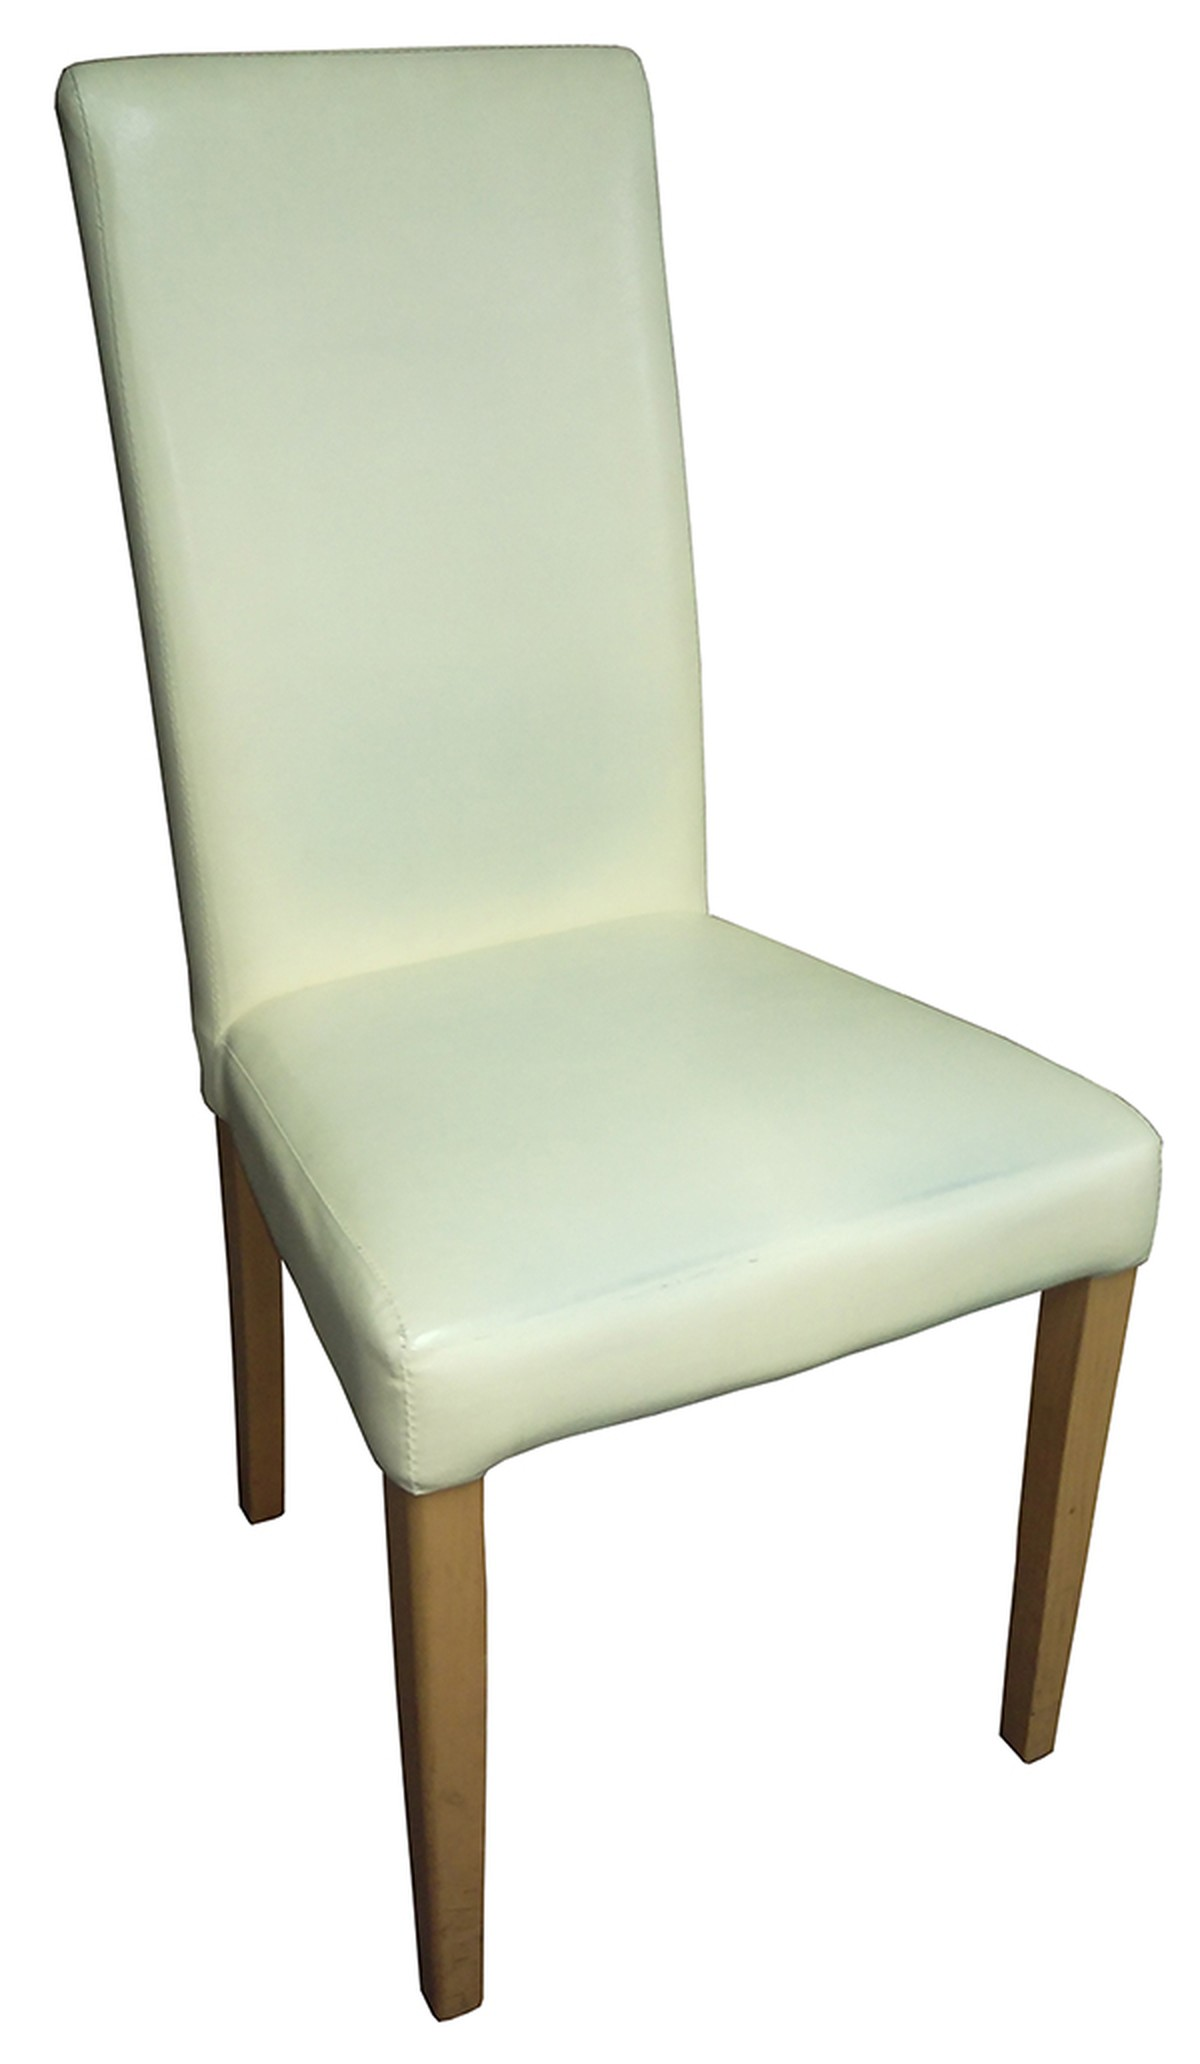 Secondhand Lorries and Vans Mayfair Furniture Clearance  : cream leather chairs for sale 387 from secondhand-lorries-and-vans.co.uk size 1200 x 2064 jpeg 112kB